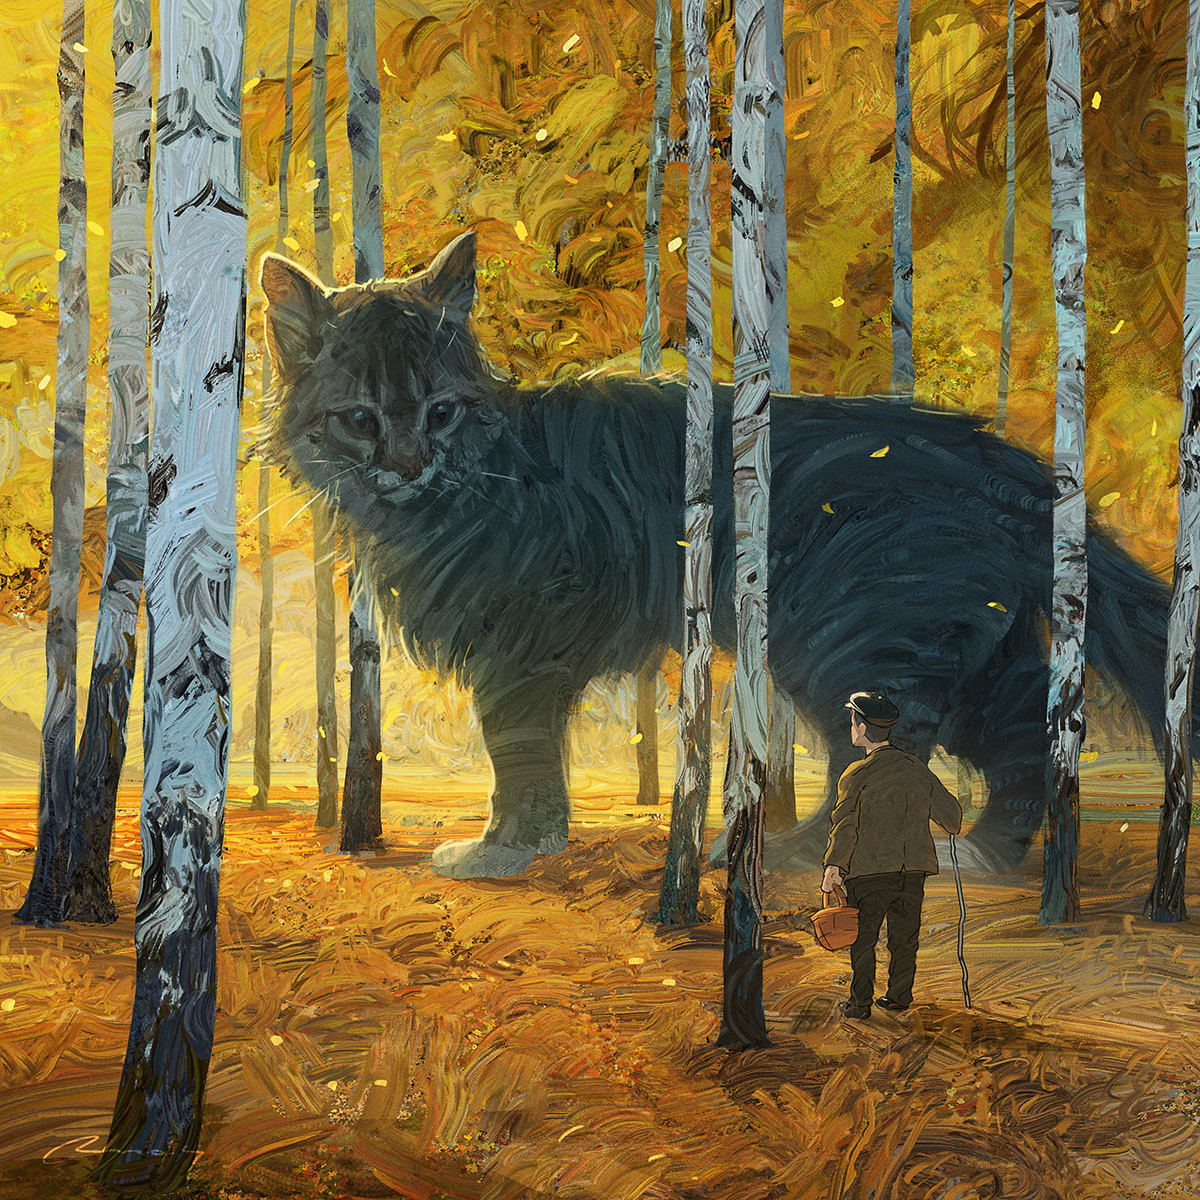 Digital Painting Illustration Artem Chebokha Rhads Giant Cat forest Yellow